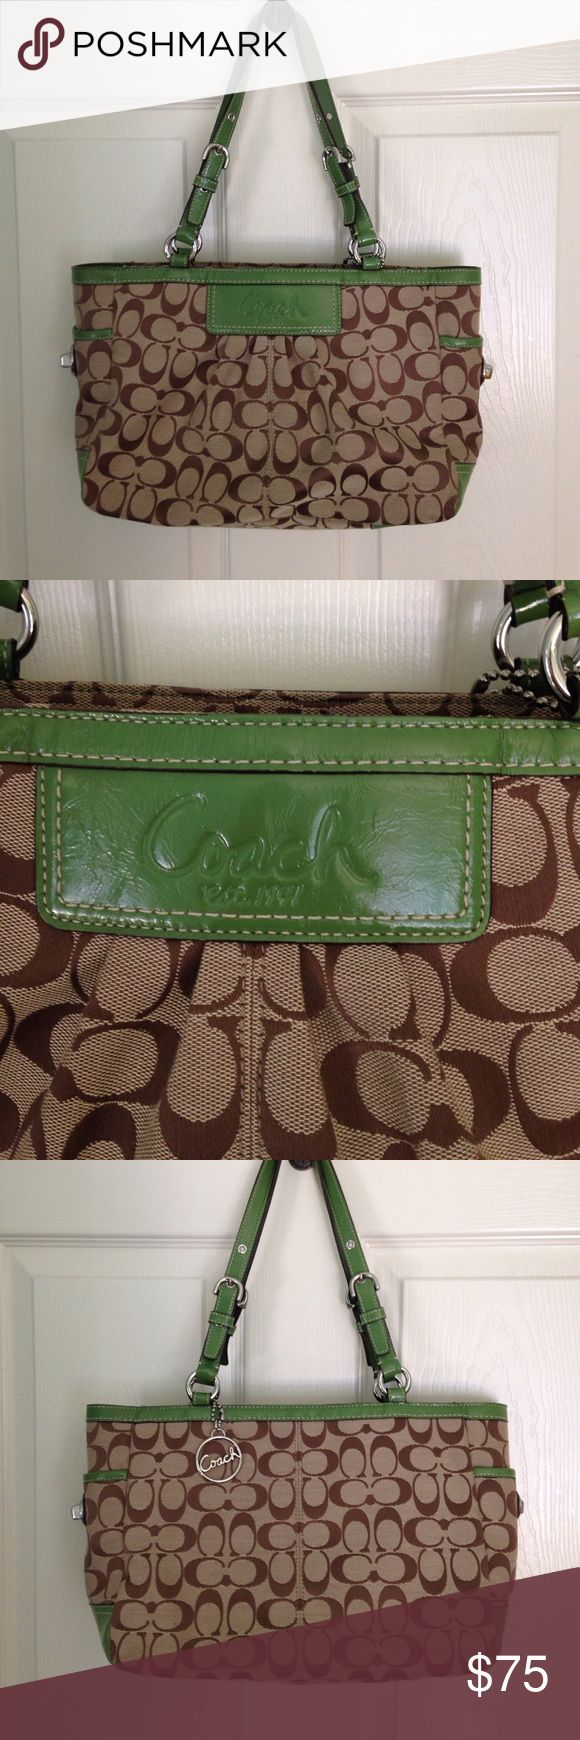 Coach purse. Green brown. Like new condition. Authentic coach purse in green leather and brown canvas with coach signature print. One small black mark on bottom that is appx 3/4 in long. Haven't tried to remove it. Inside is super clean. Coach Bags Shoulder Bags